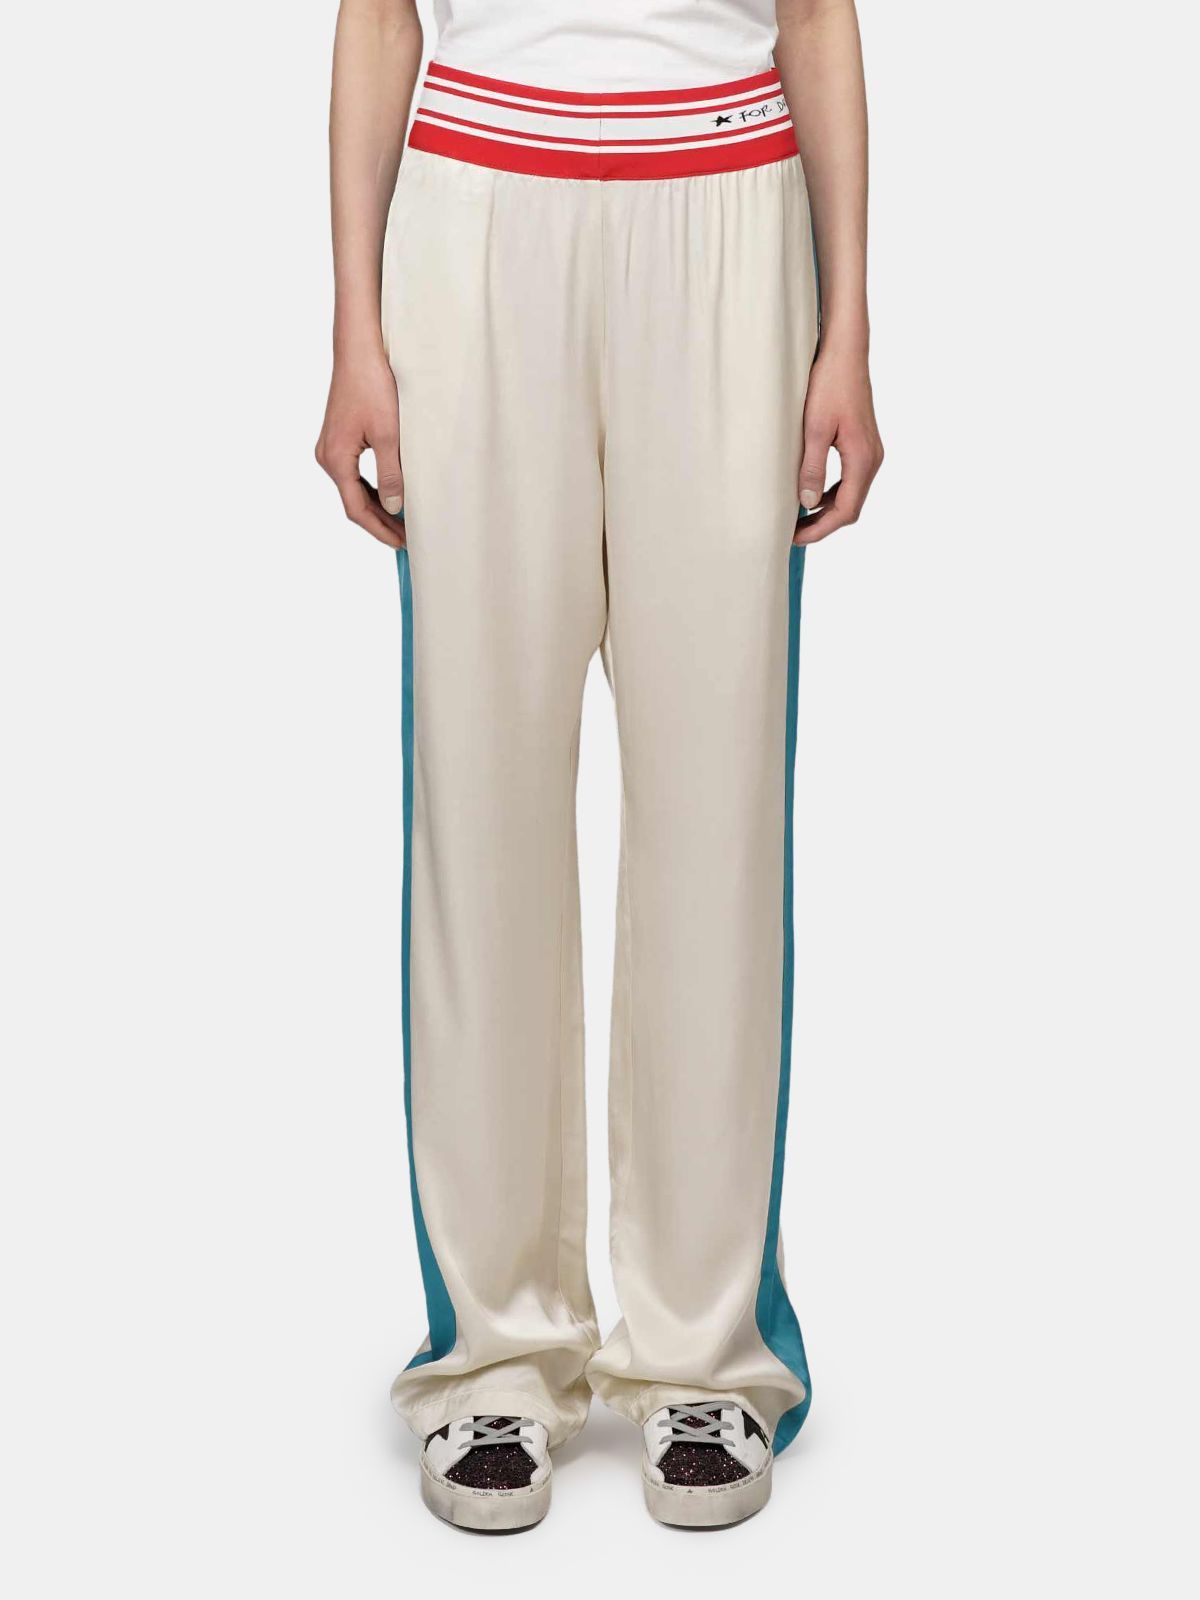 Golden Goose - Betty joggers in beige with blue bands and elasticated waistband in